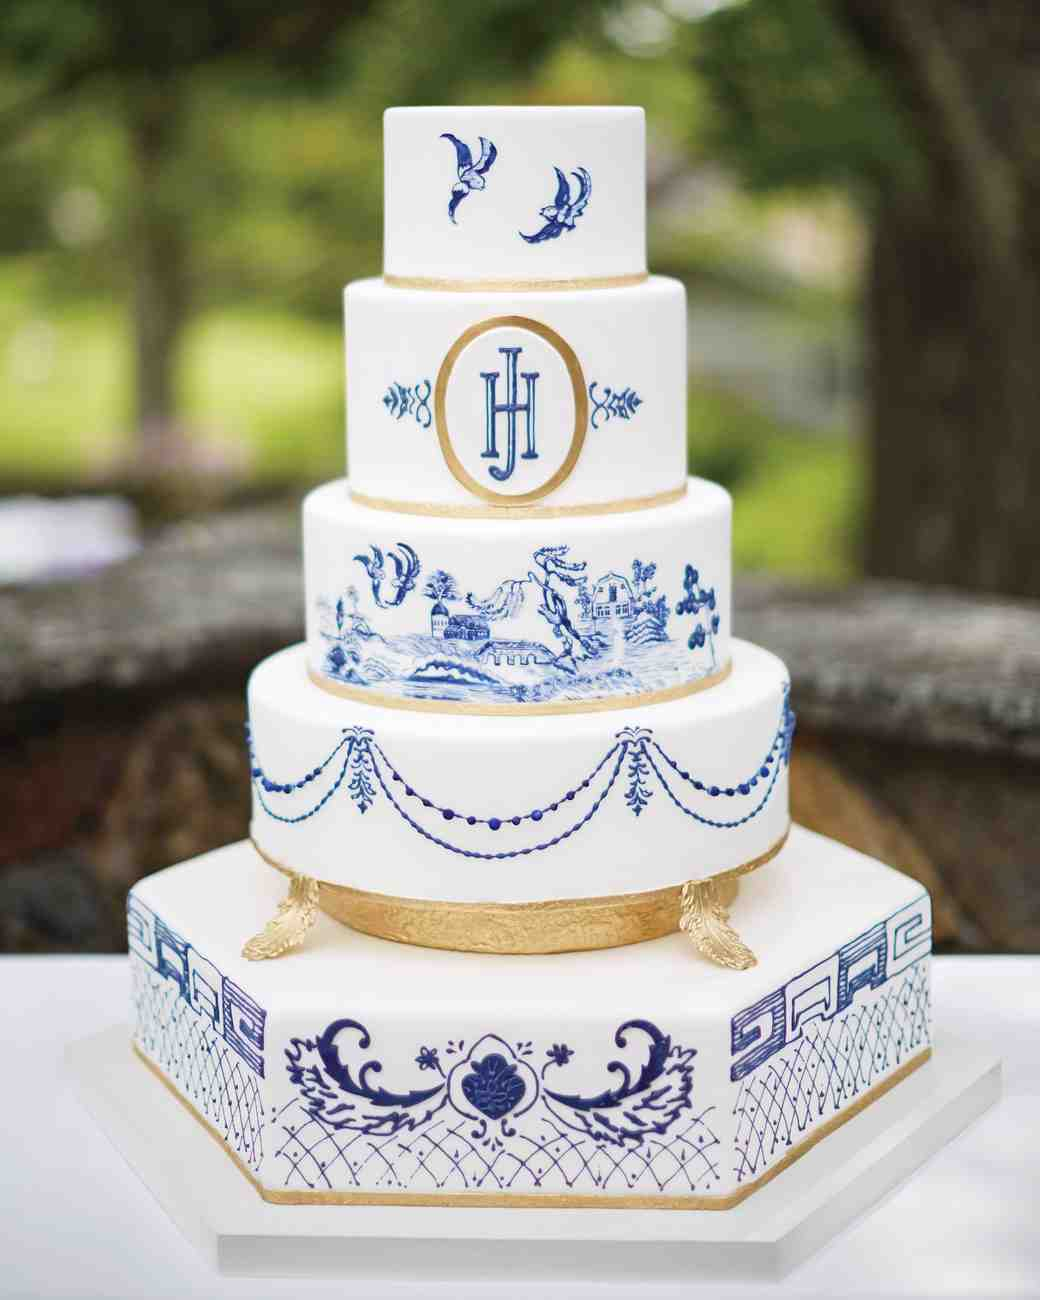 10 Scrumptious Vintage Wedding Cake Designs| vintage Wedding Cake, Wedding, Wedding Cake Ideas, Wedding Cake Designs